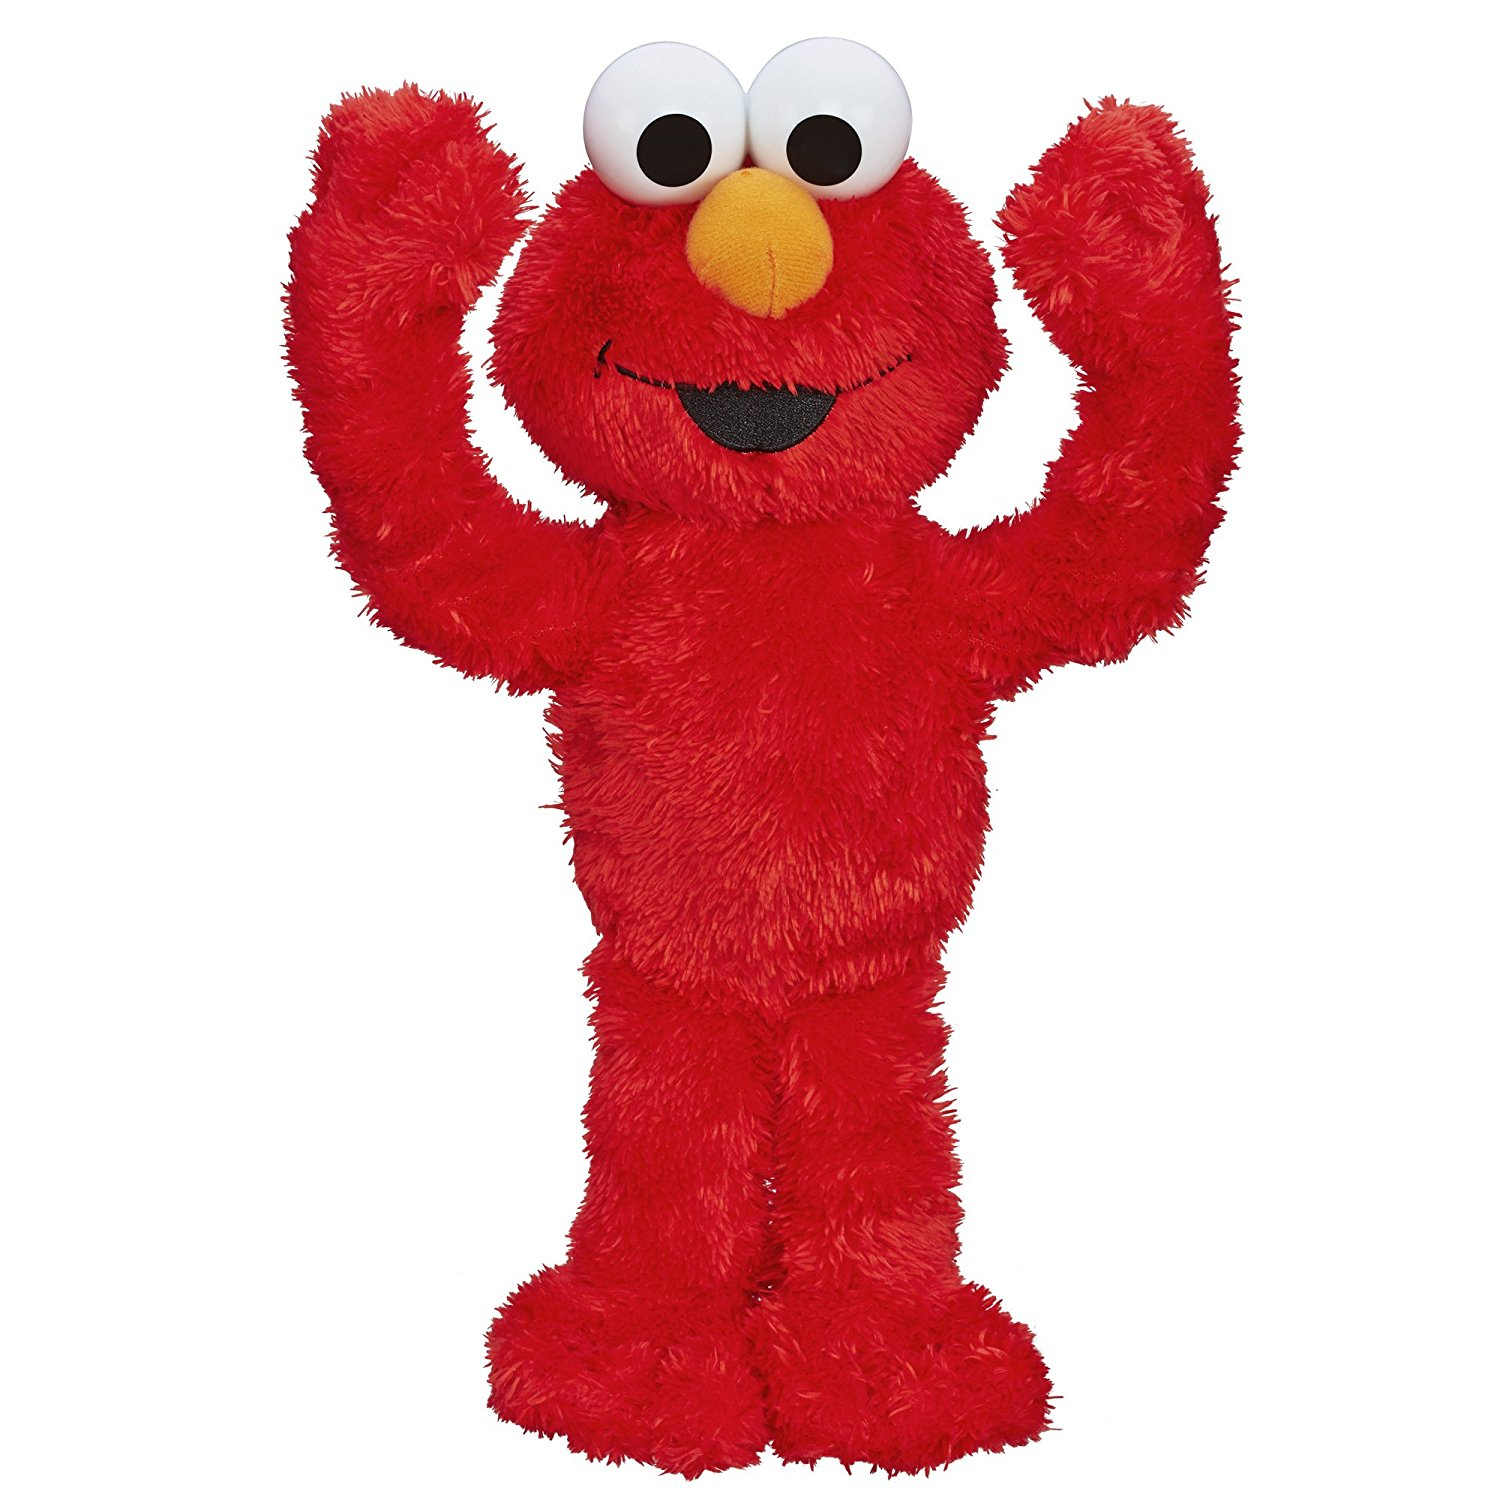 My Peek-a-Boo Elmo Toy, High quality toys for children all ages by Sesame Street